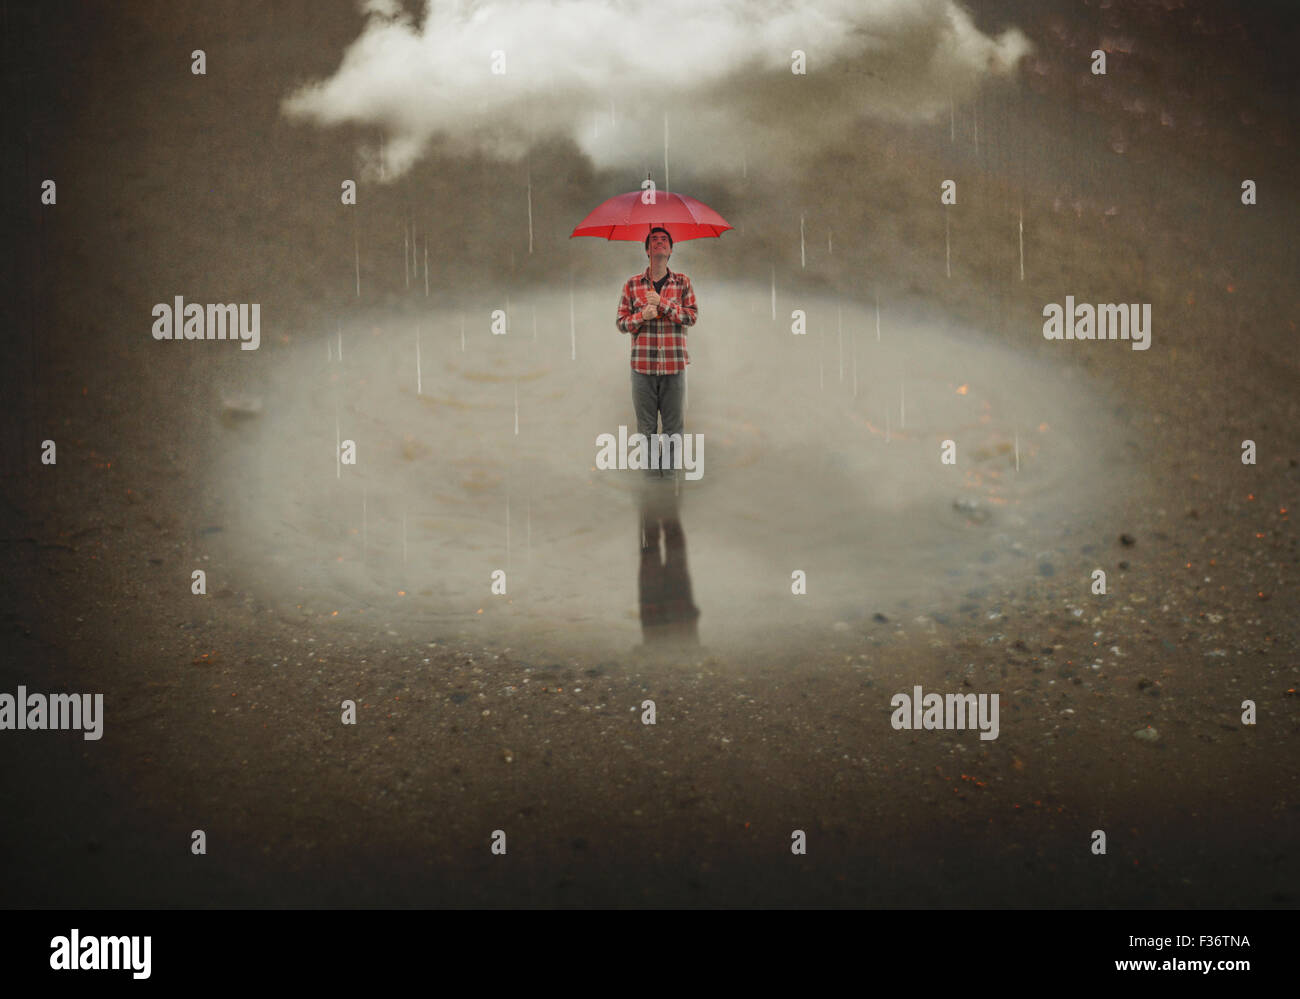 Miniature boy smiling standing in a puddle with a red umbrella with a big cloud - Stock Image